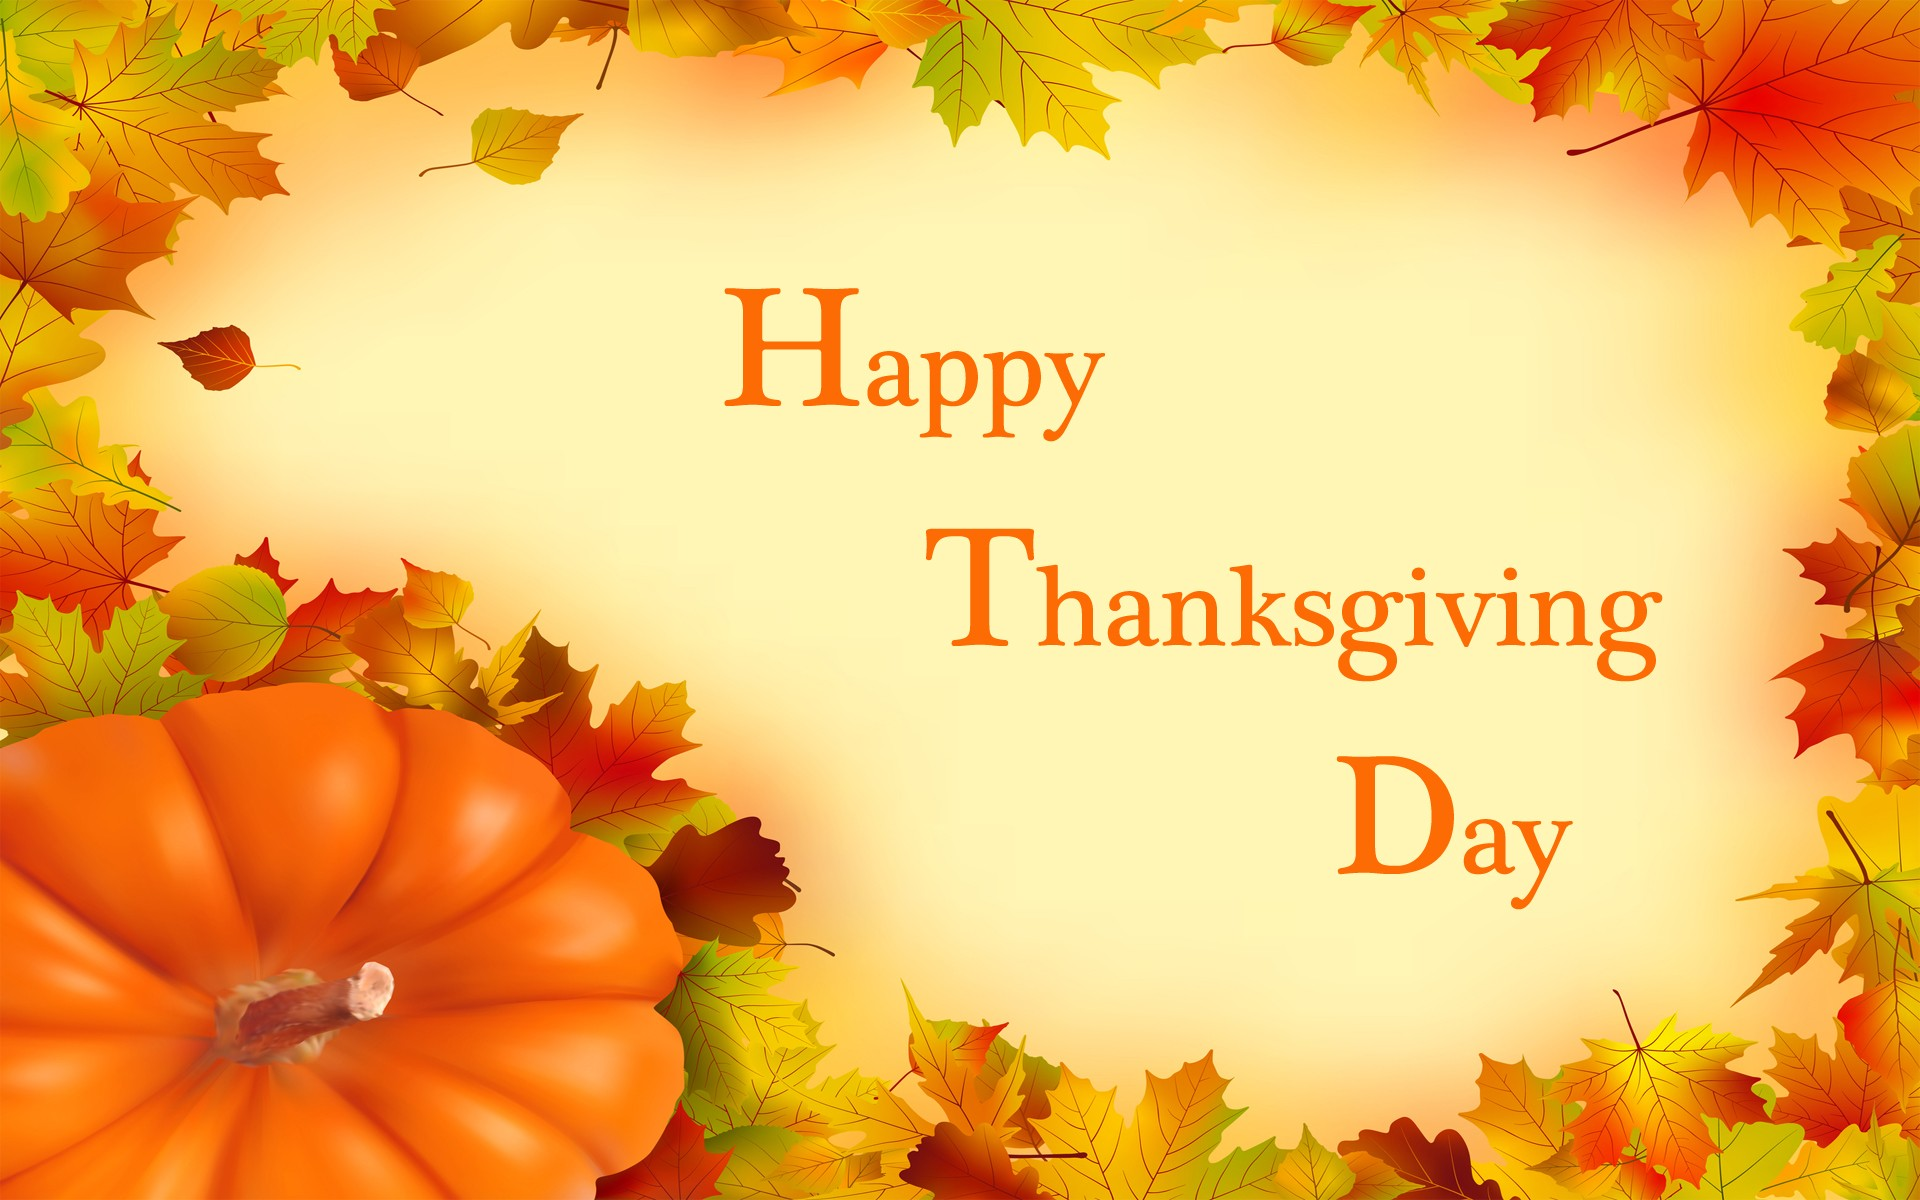 Thanksgiving Day Clip Art Backgrounds